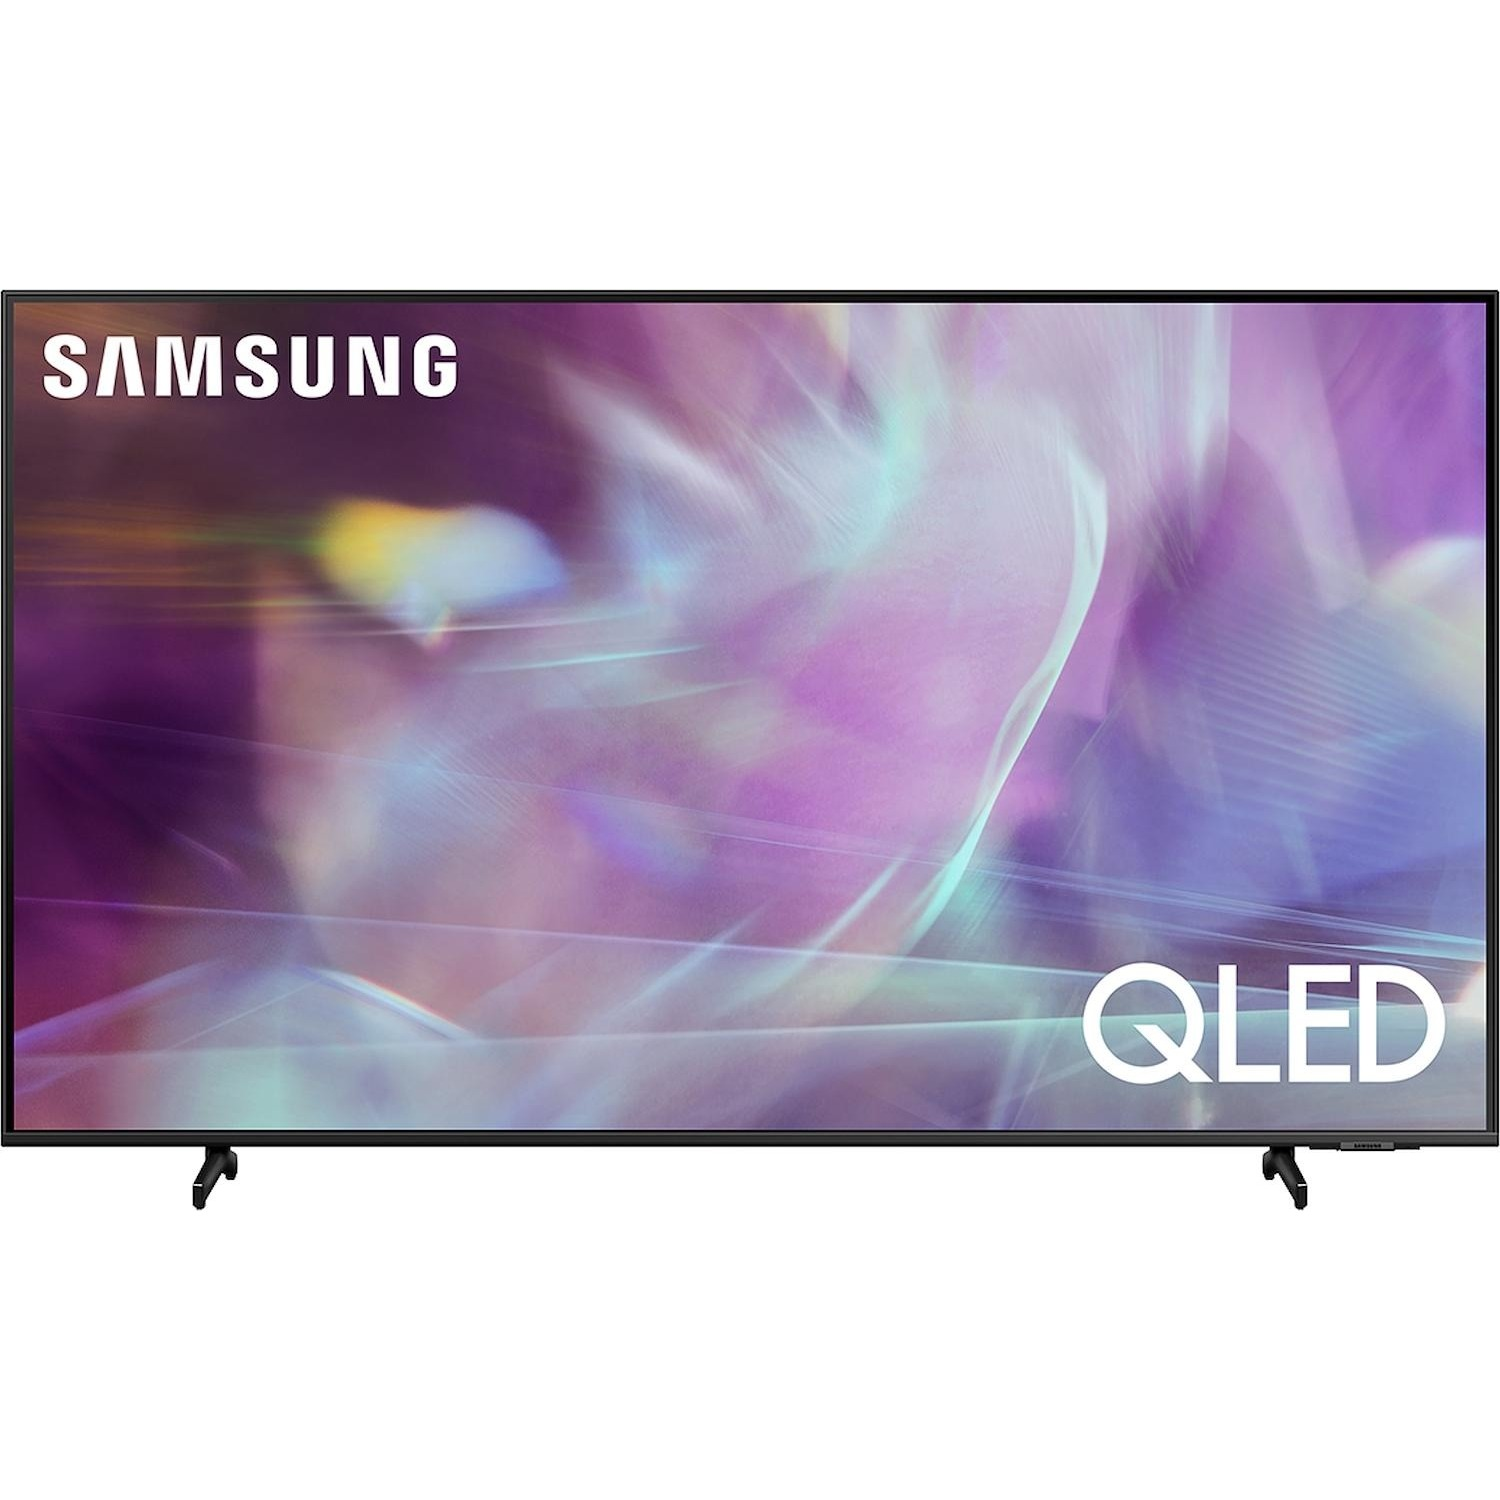 Immagine per TV LED Smart 4K UHD Samsung 50Q60AAU da DIMOStore